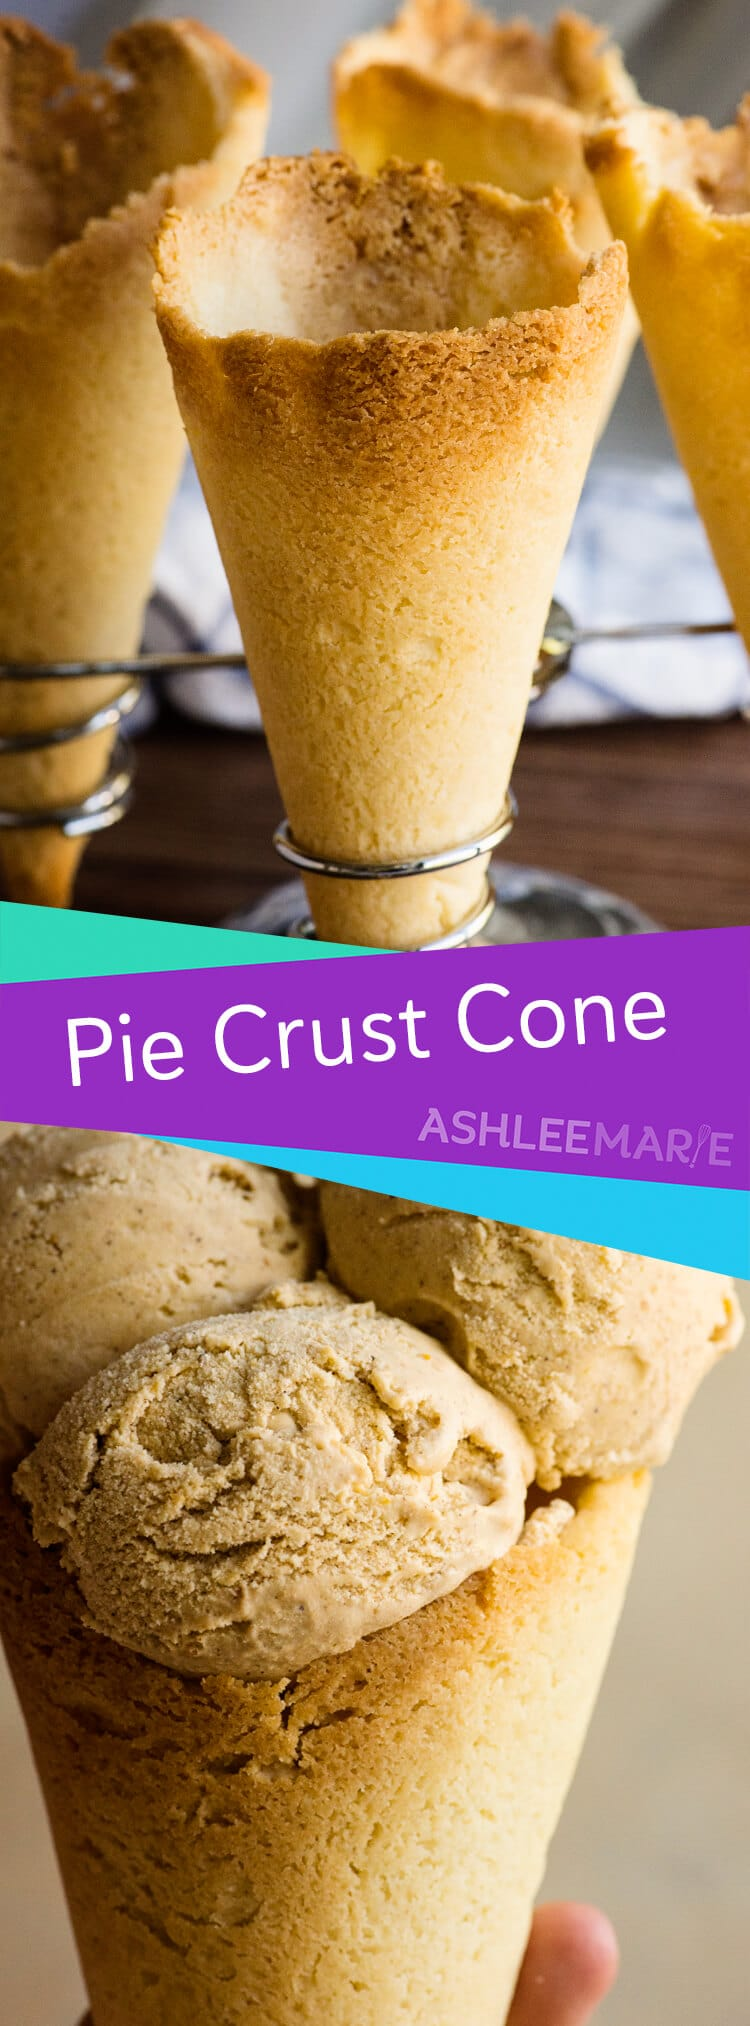 pie crust cone recipe and video